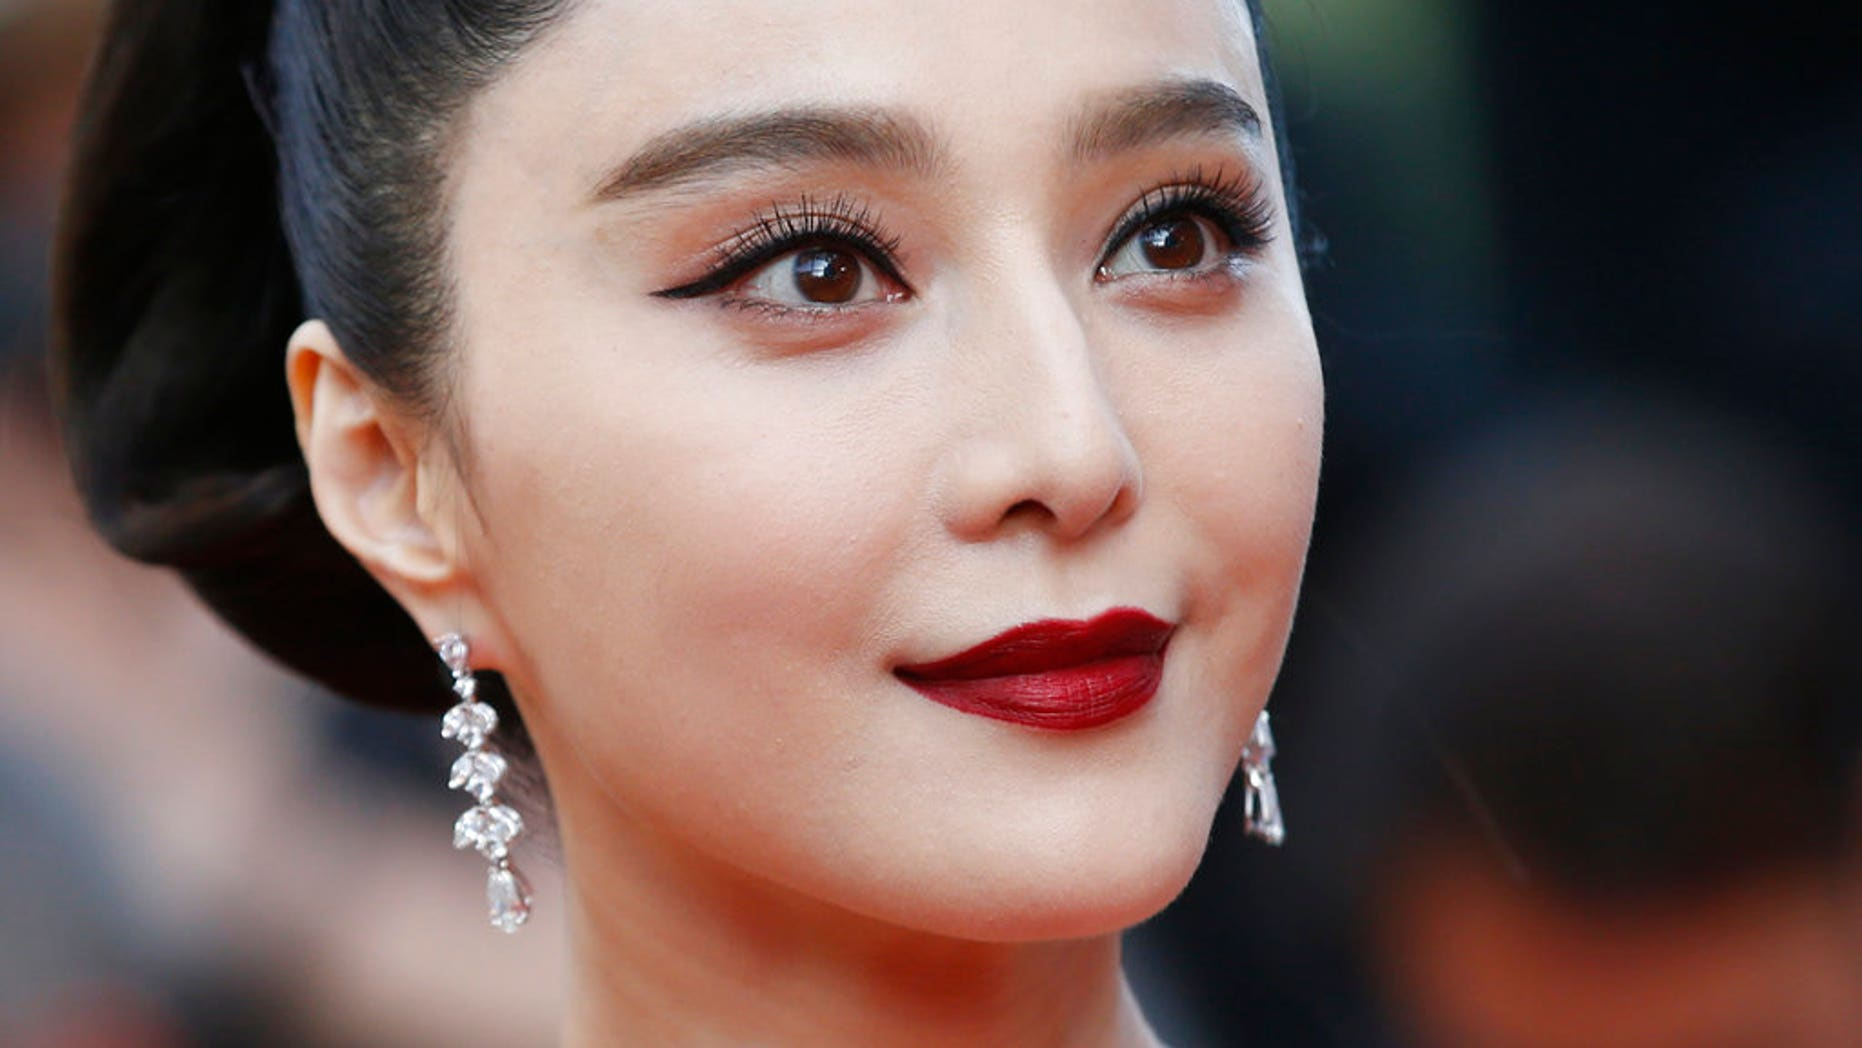 China fines Fan Bingbing in months-long tax evasion case